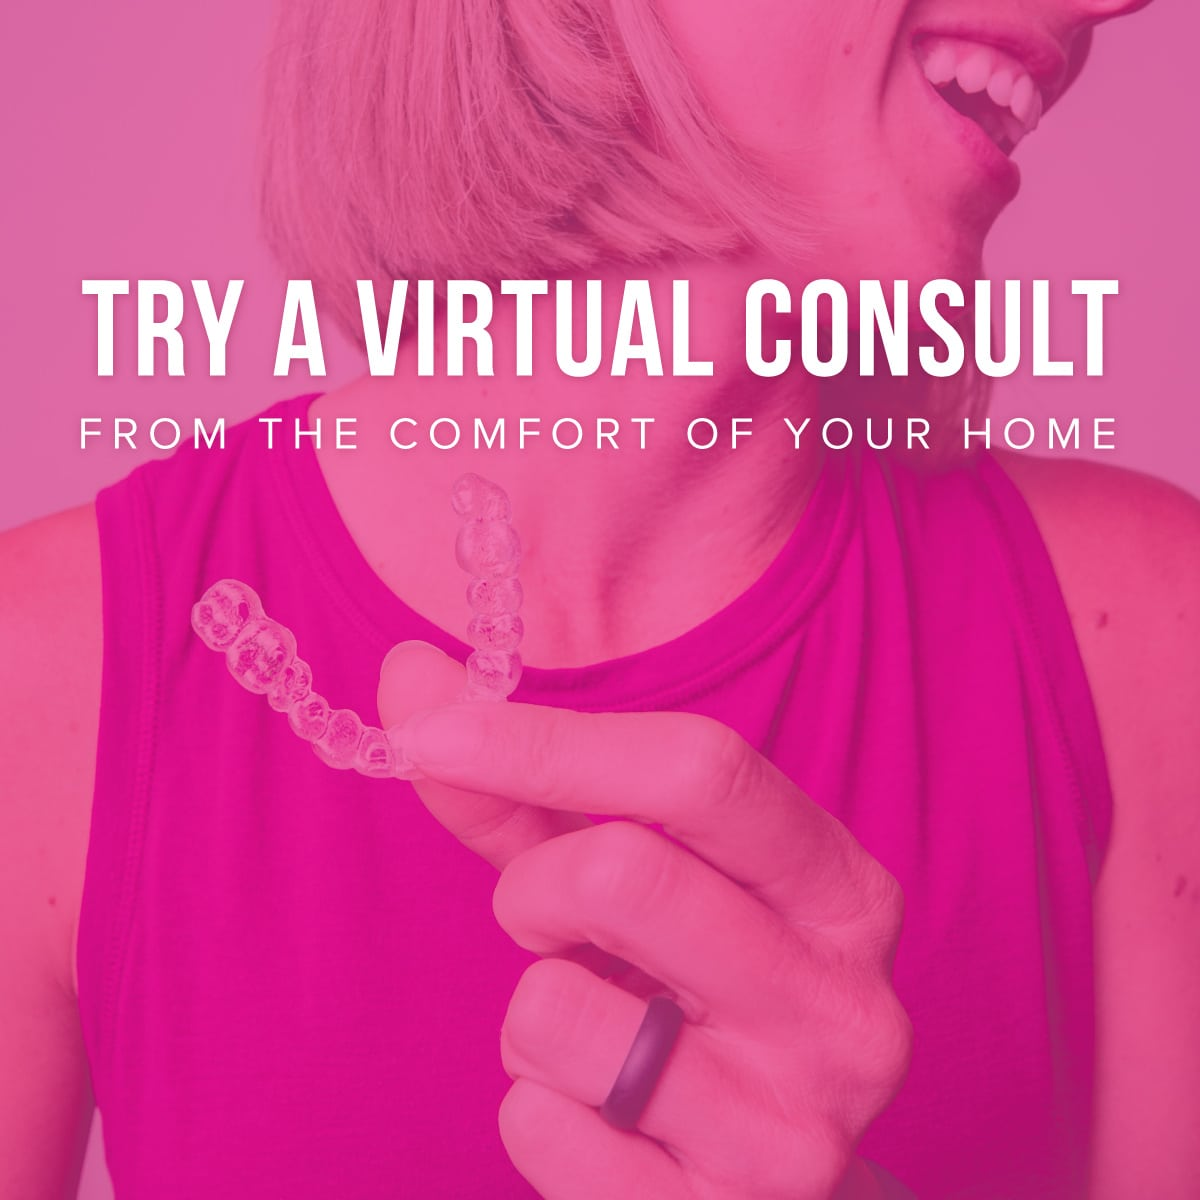 VC Promo 4 - Find out if Braces or Invisalign are right for you– without coming in to the office!